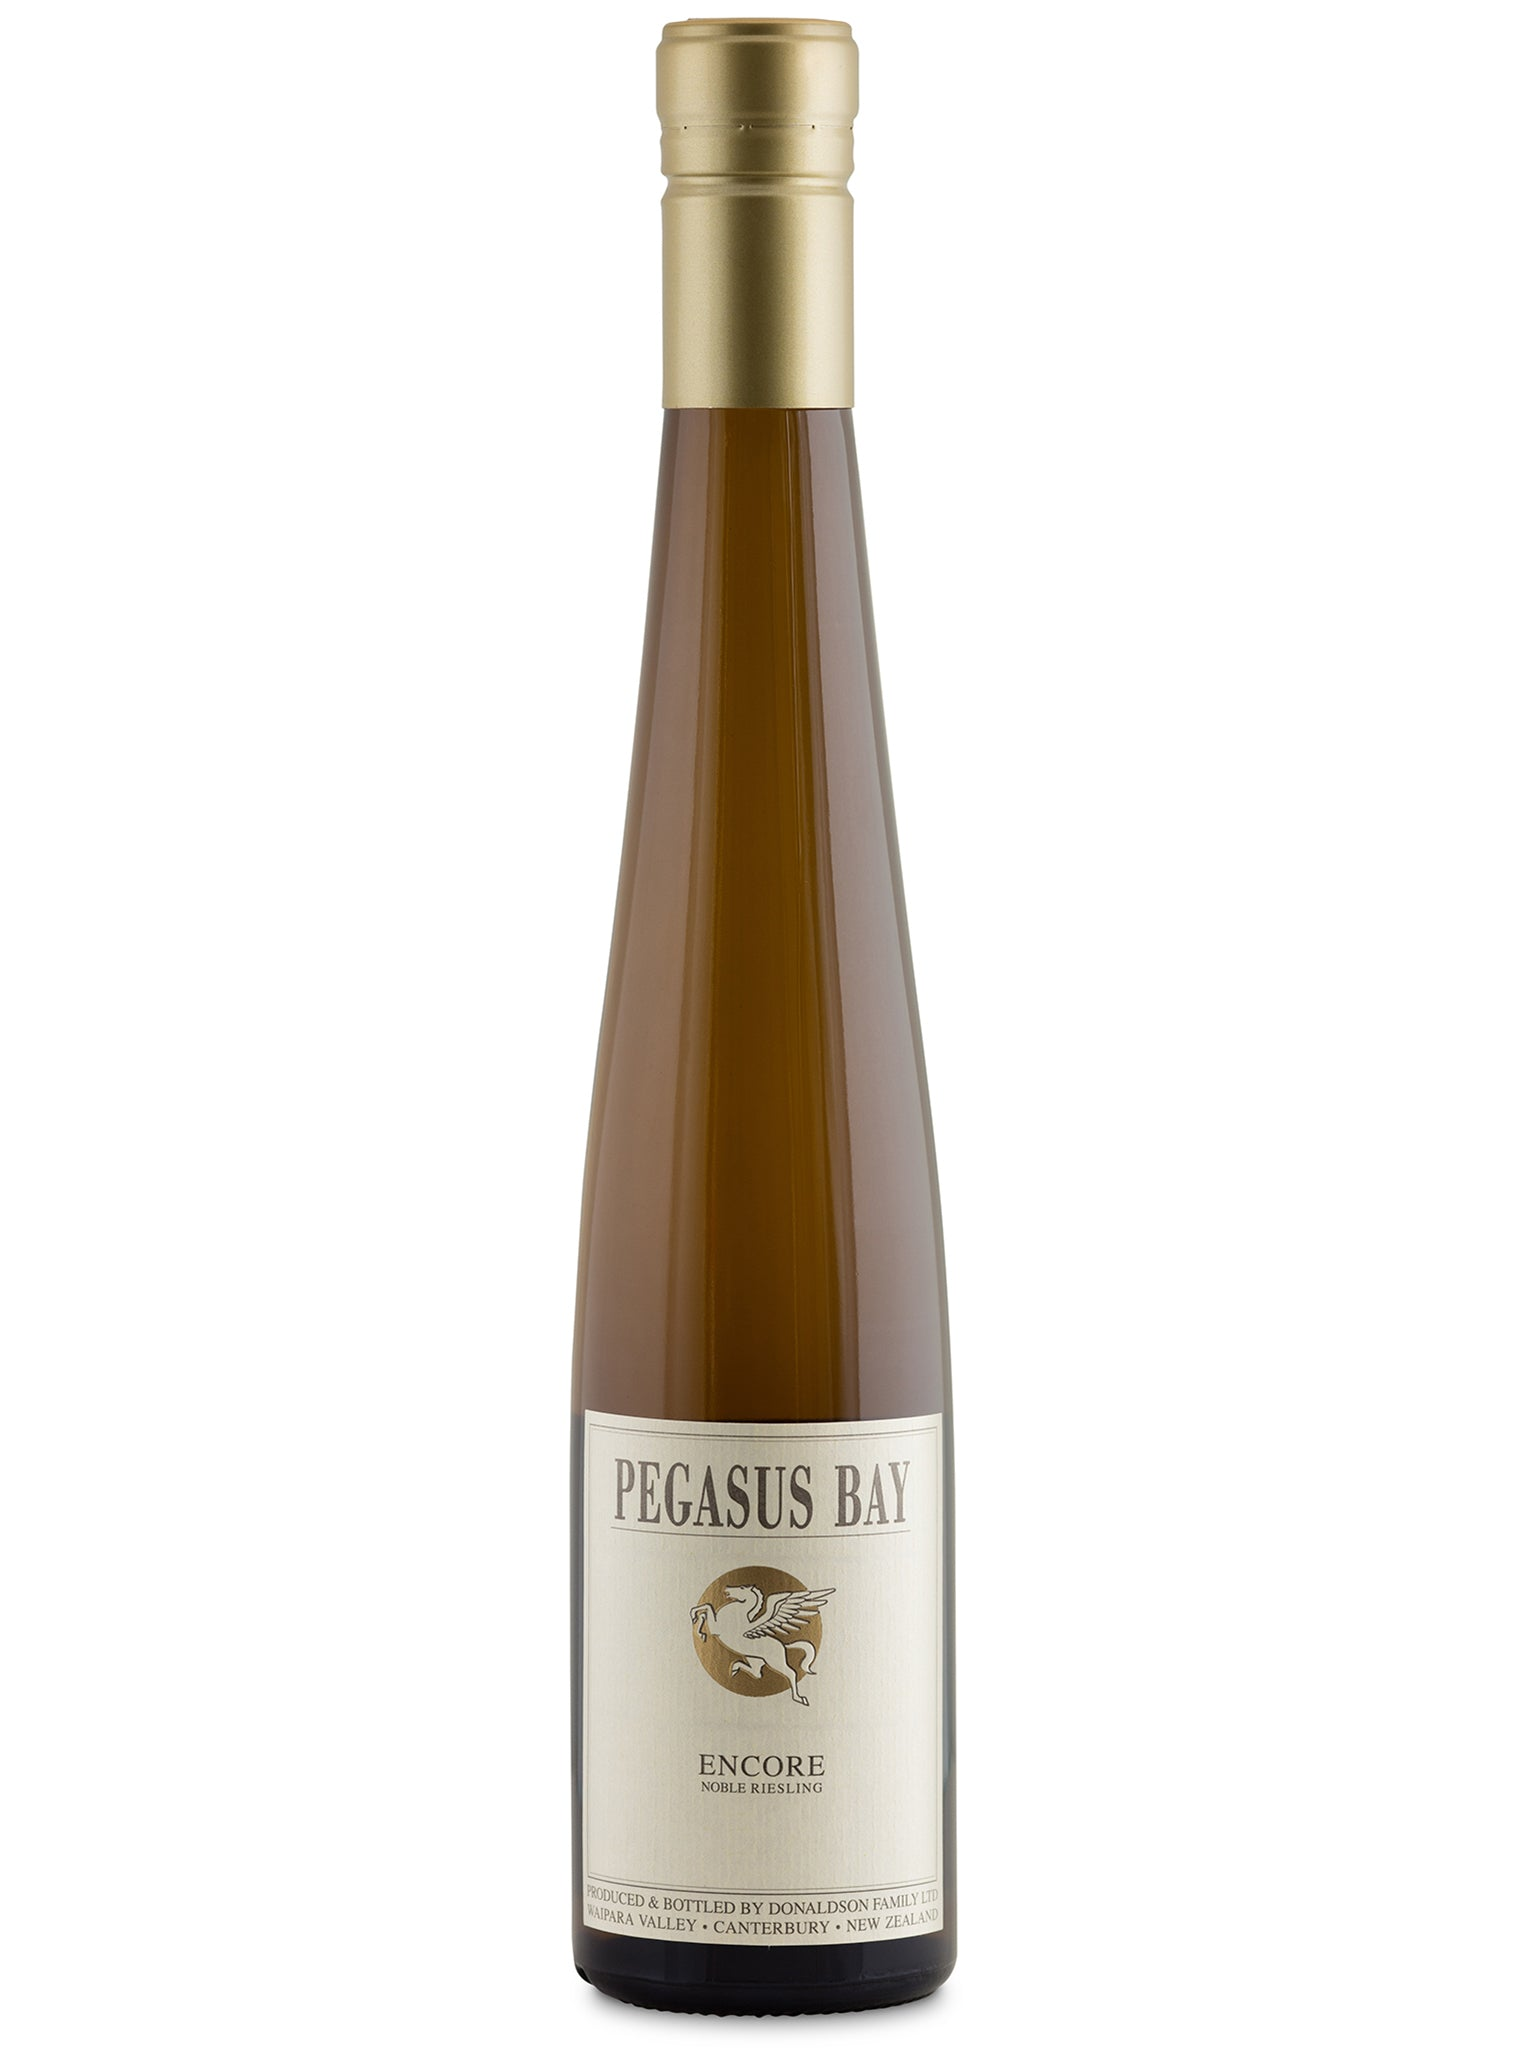 Pegasus Bay Encore Noble Riesling 375ml 6pk 2016